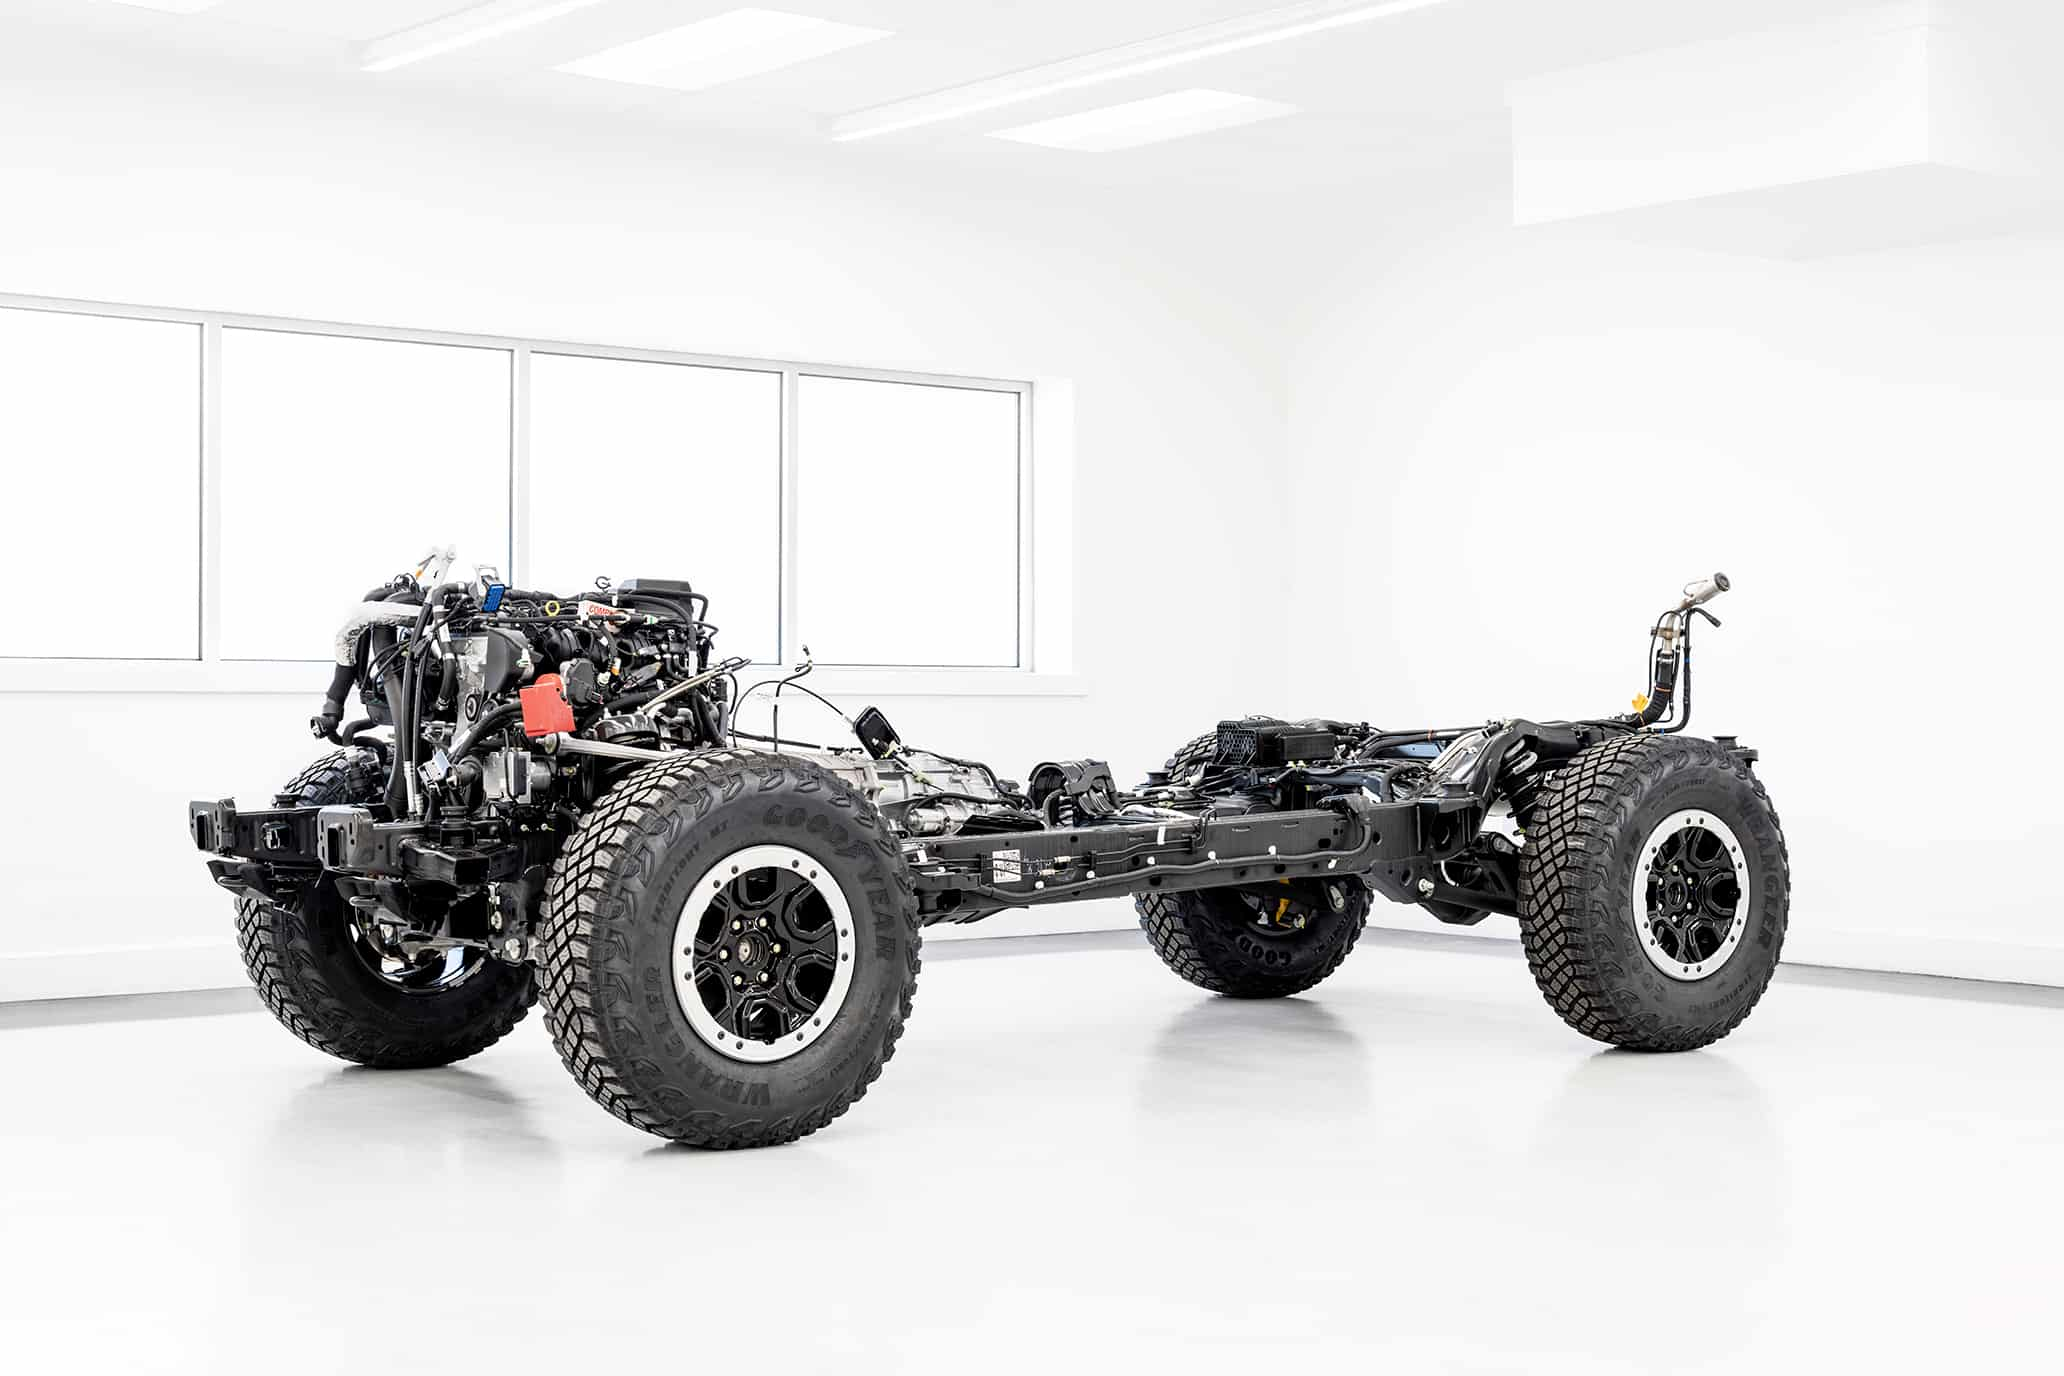 2021 Ford Bronco chassis